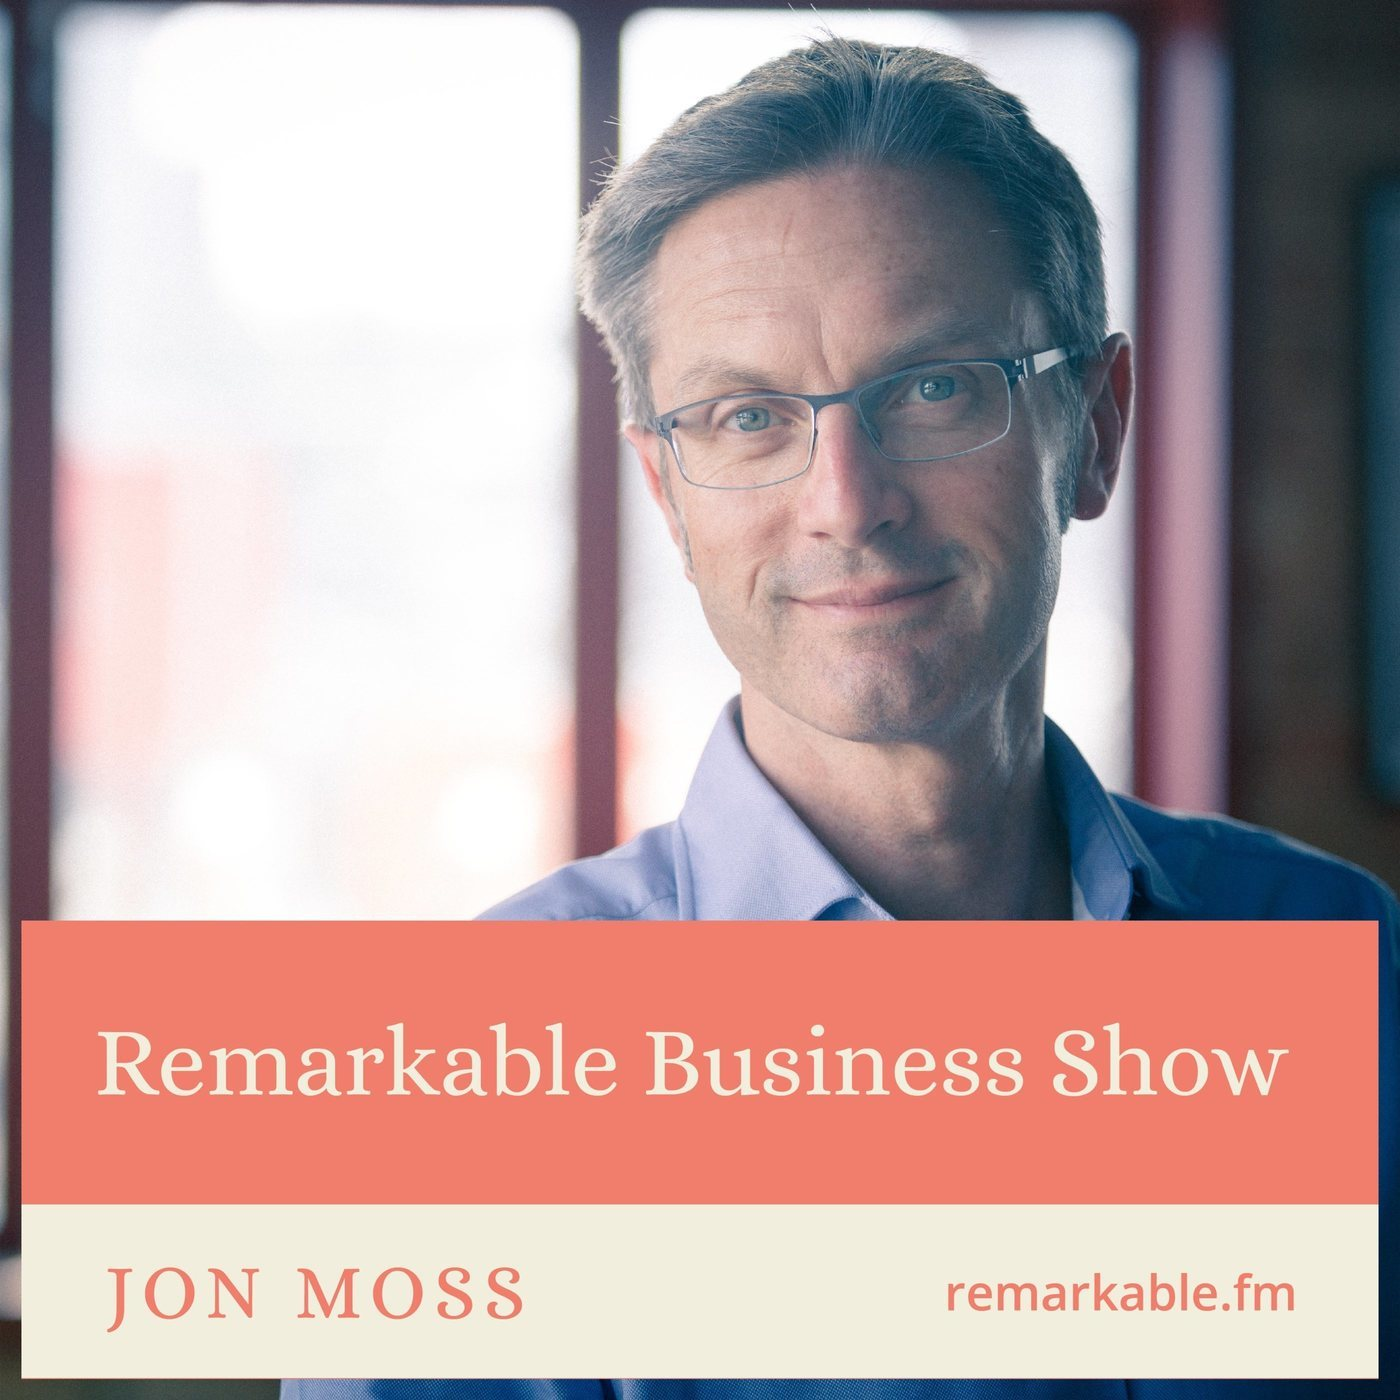 The Remarkable Business Show 3: Interview with Keir Whitaker from Shopify